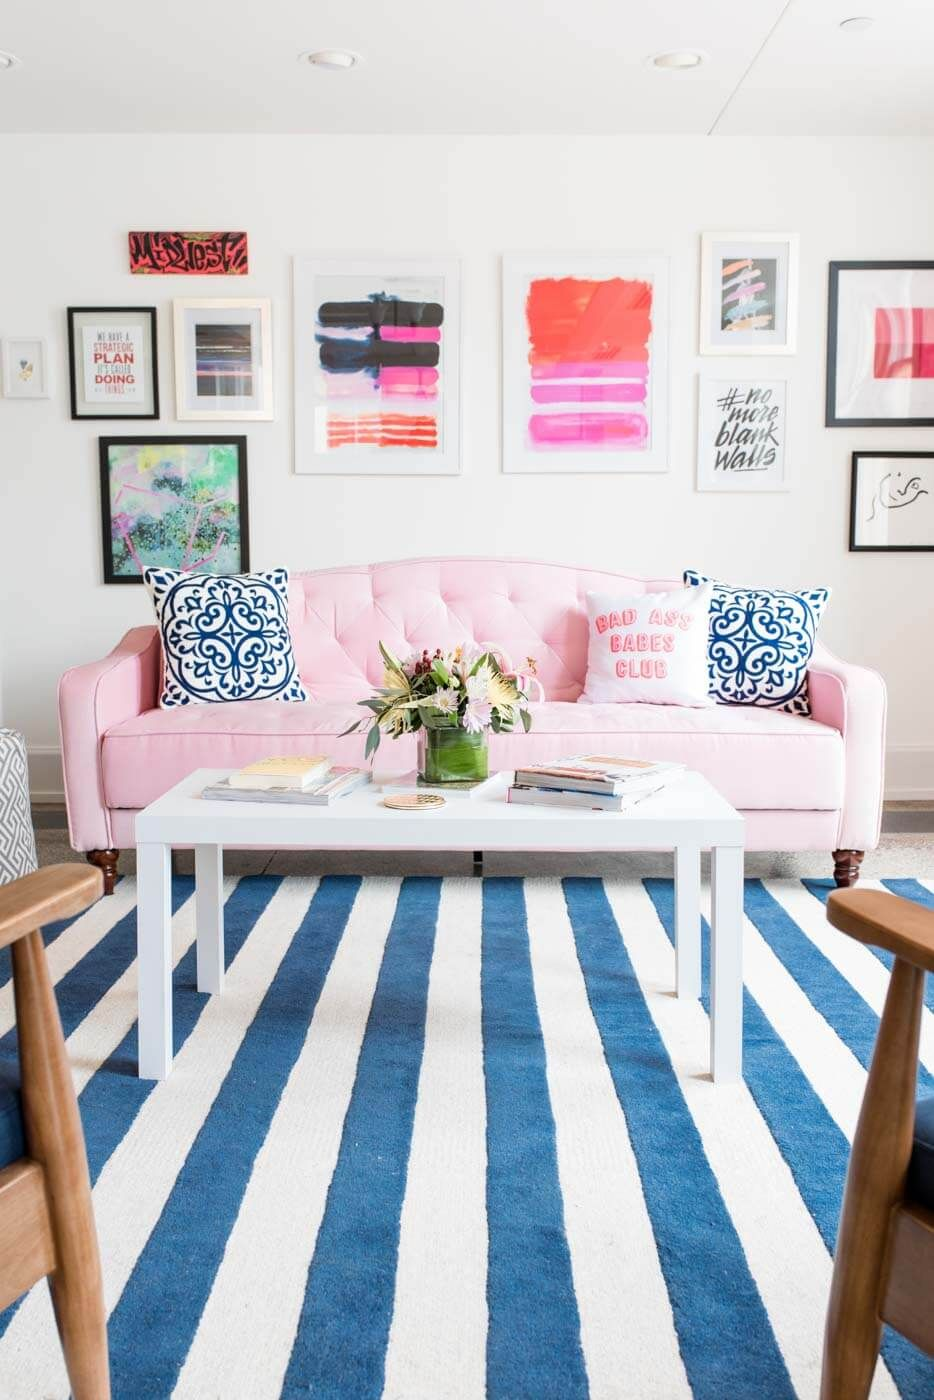 living room, white wall, pink sofa, blue white striped, wooden chairs, white wooden coffee table